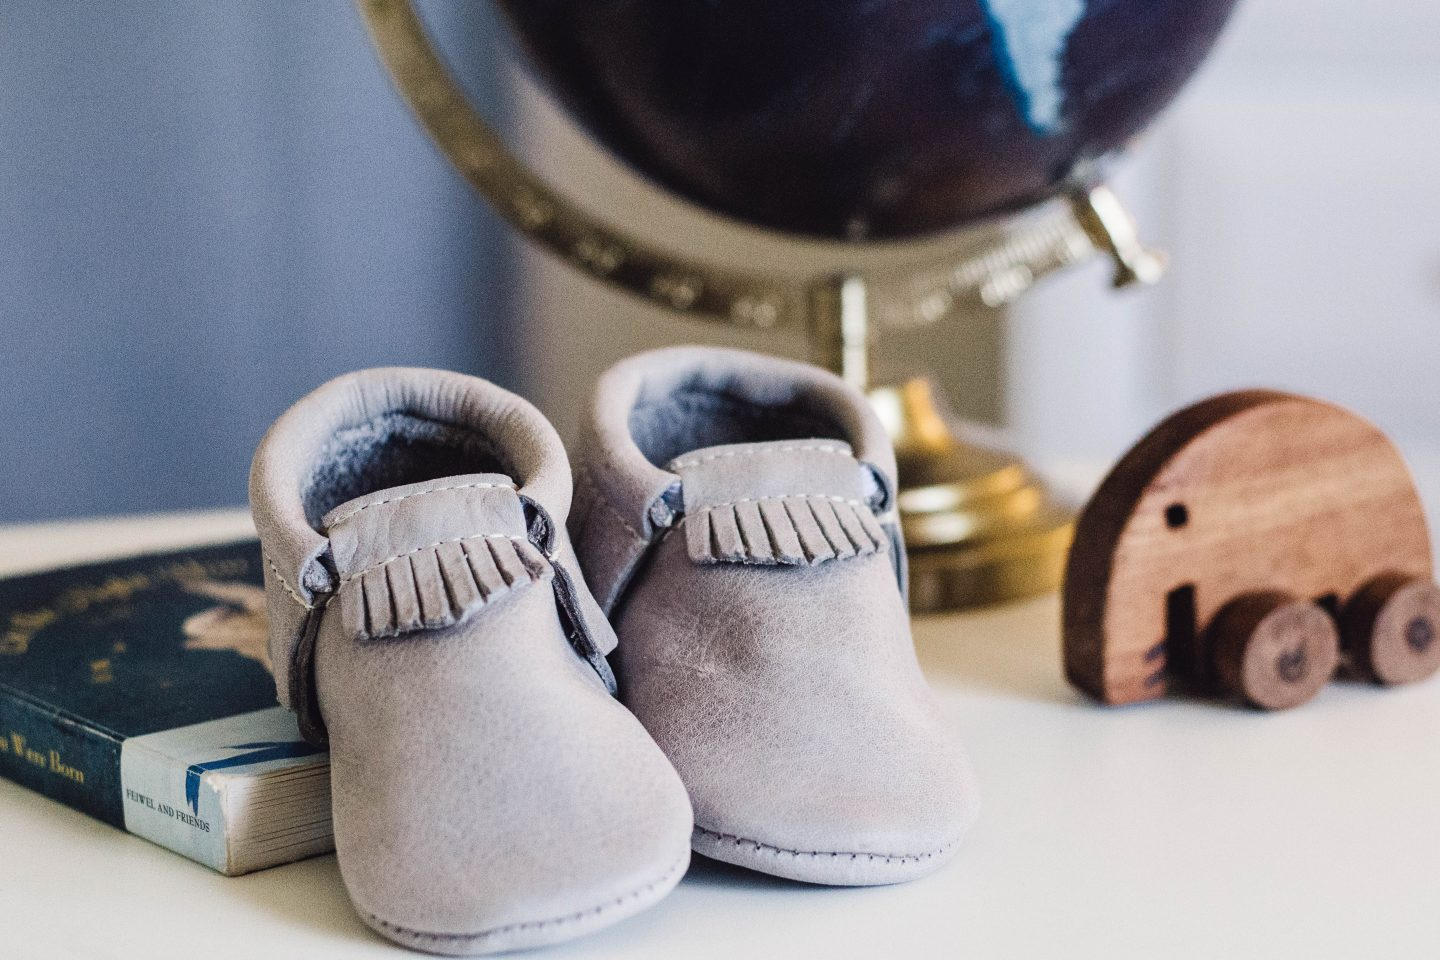 On Turning 19 Months + Making Memories in Our Favorite Moccasins